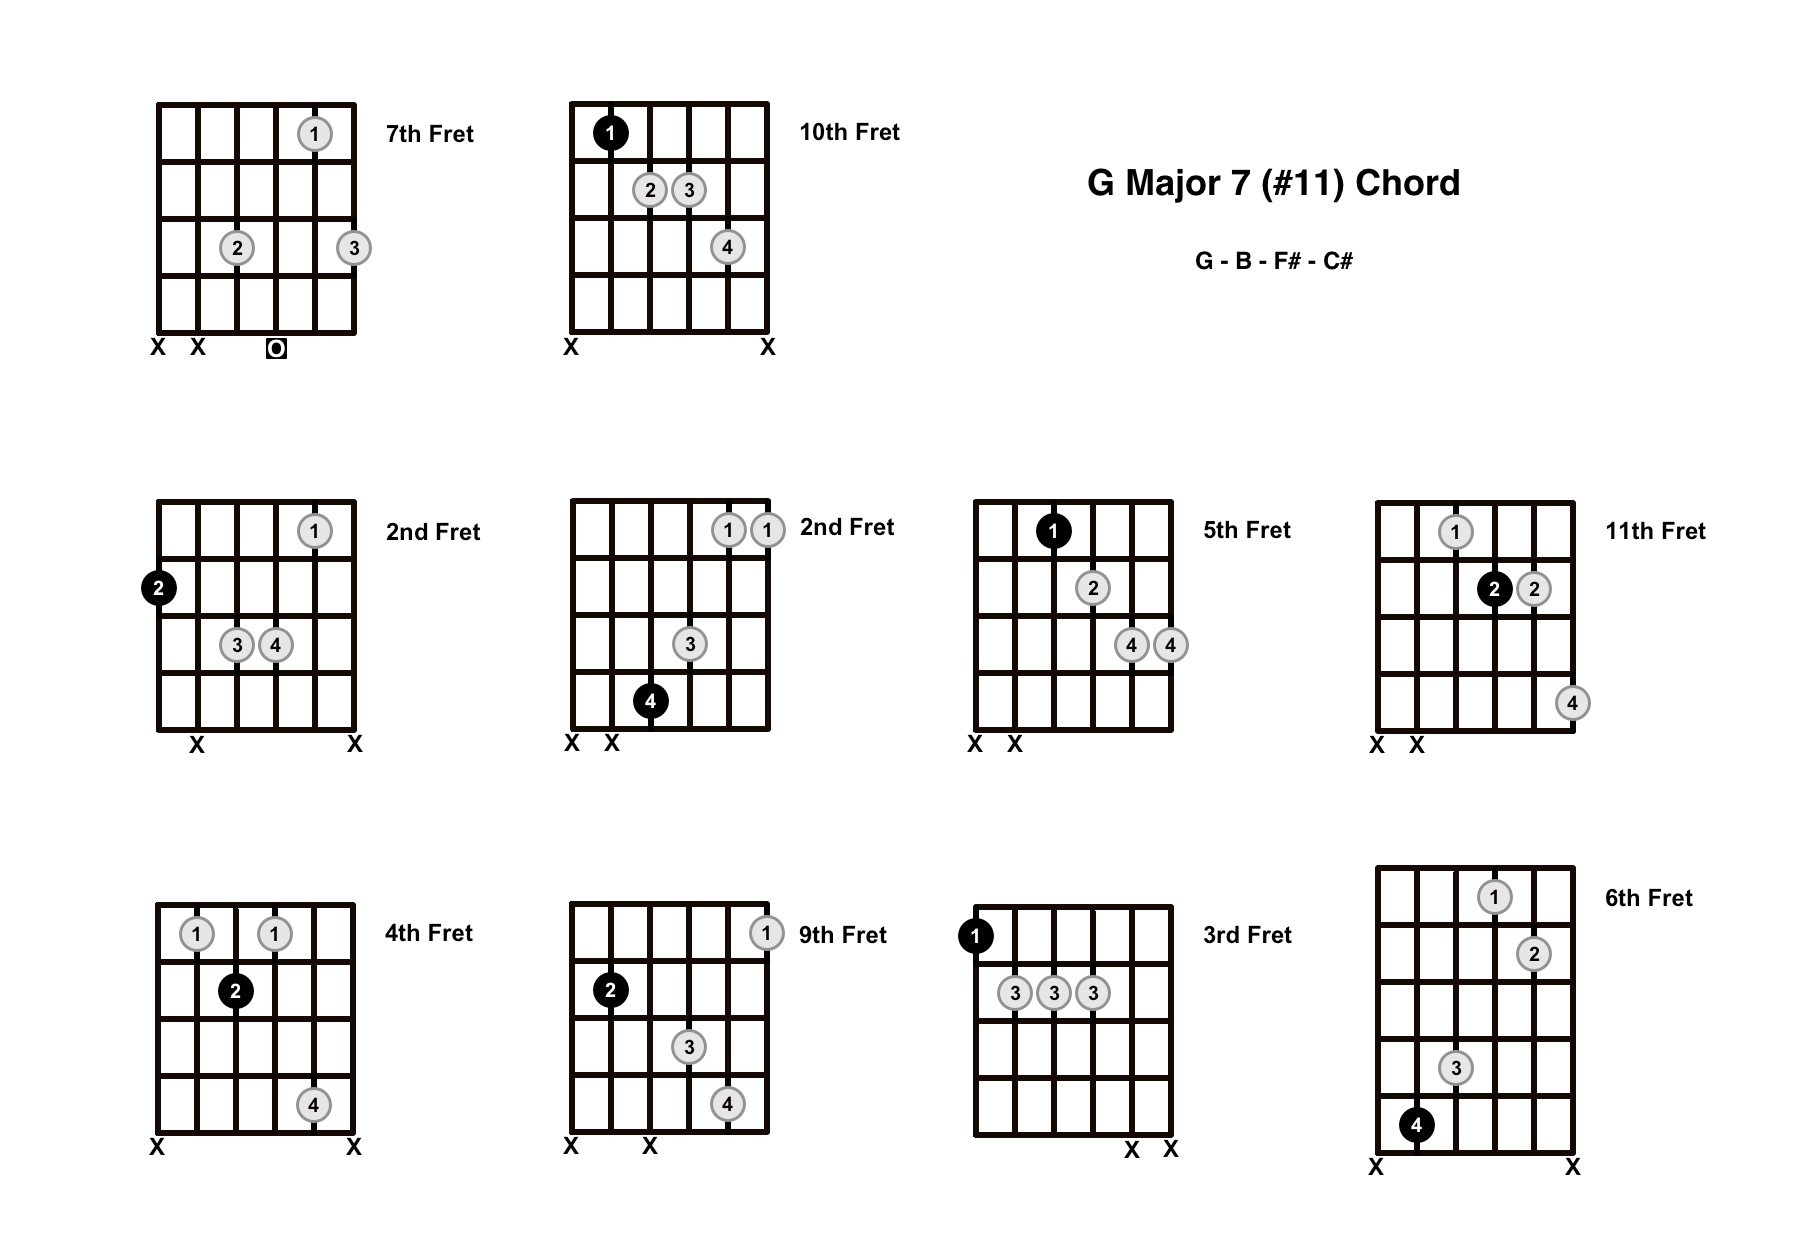 Gmaj7#11 Chord On The Guitar (G Major 7 #11) – Diagrams, Finger Positions and Theory